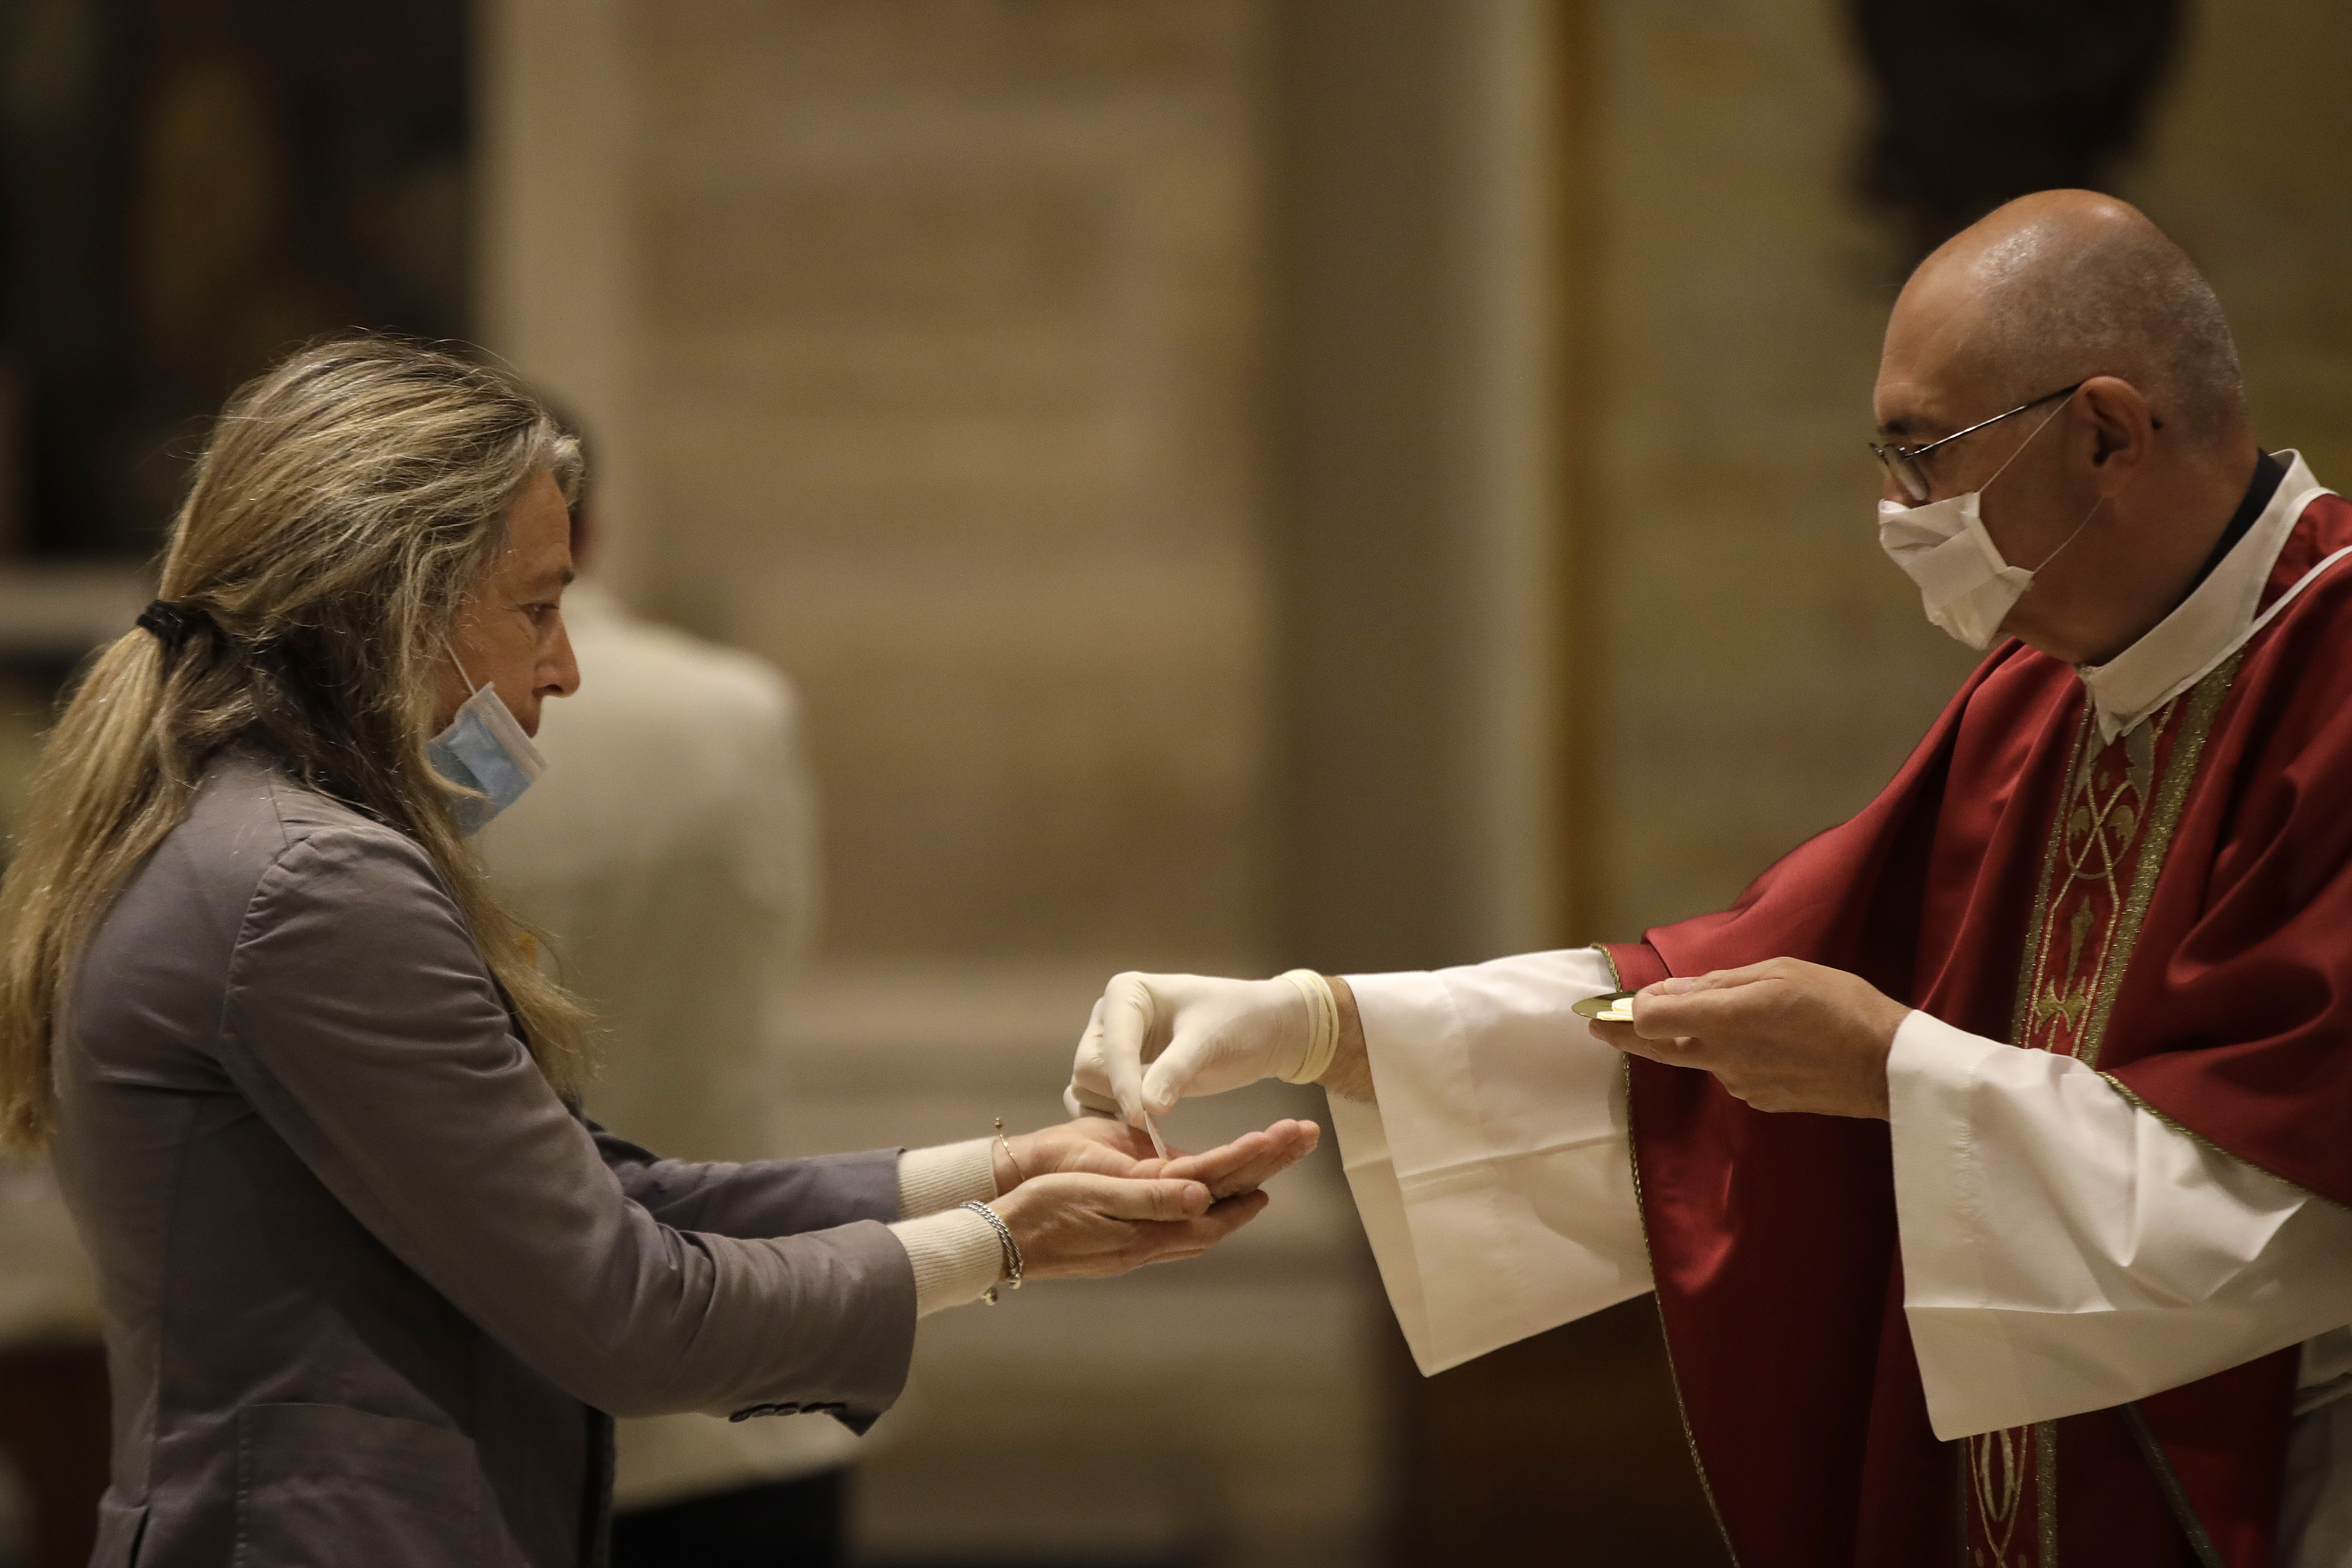 Father Jose Maria Galvan, wearing gloves to prevent the spread of COVID-19, places the host in the hands of a parishioner during the morning mass at St. Eugenio Church, in Rome, May 18, 2020.